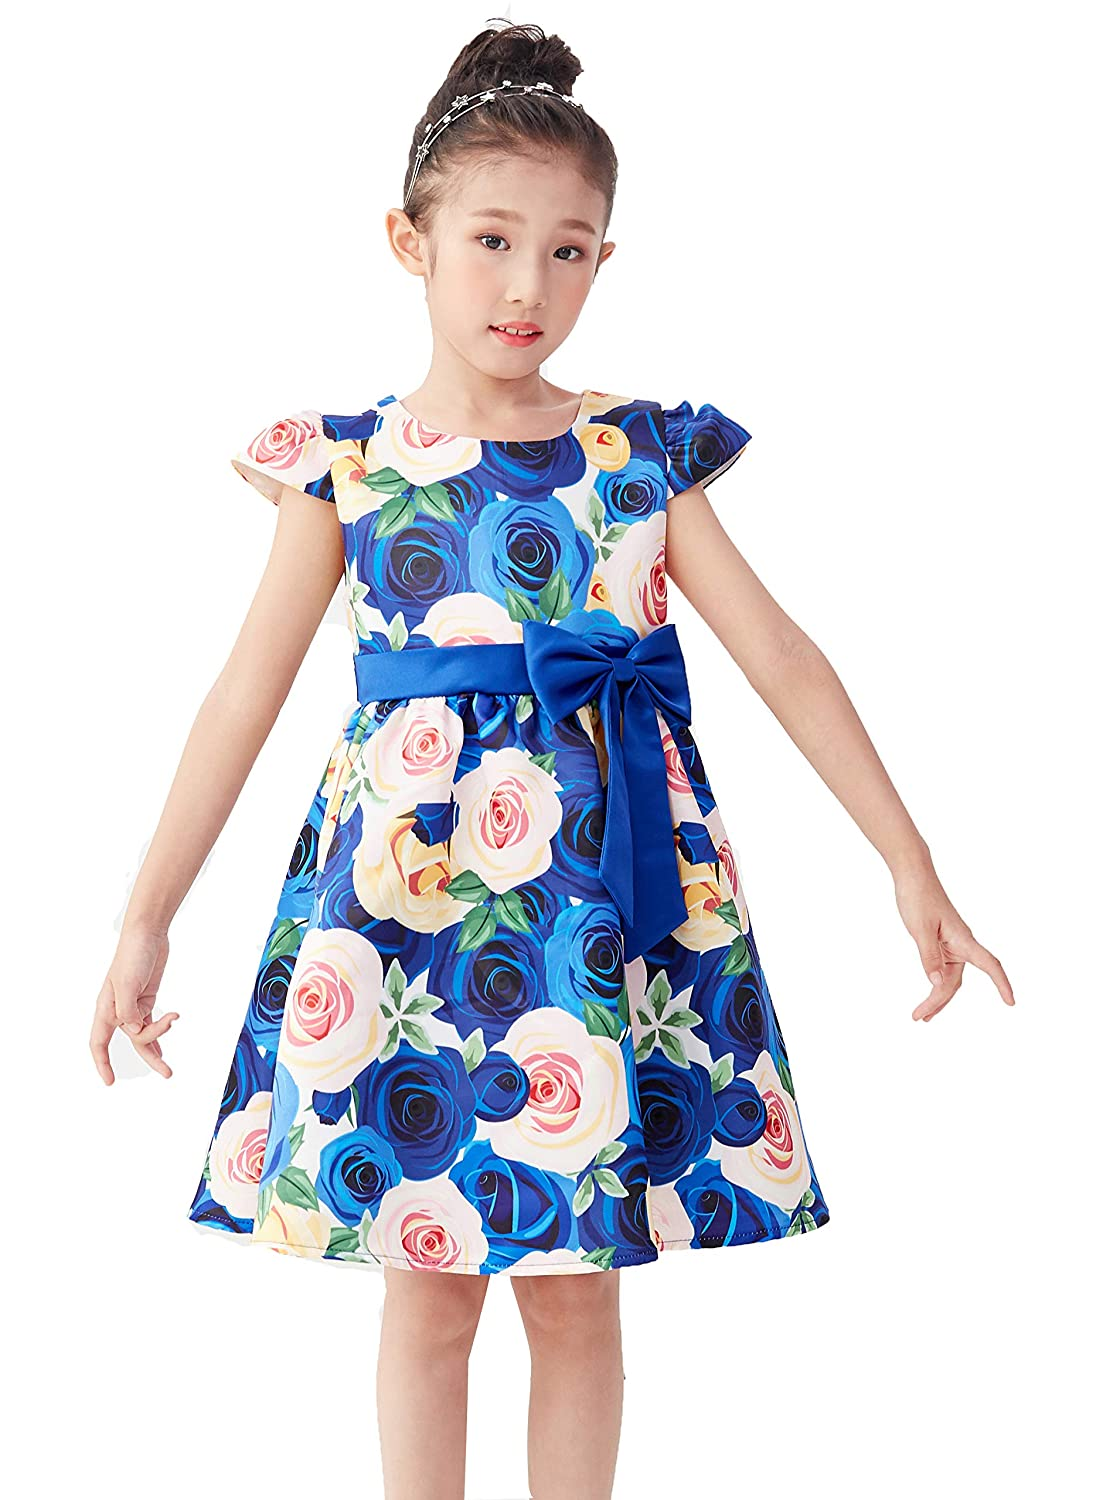 61098f40d87 ... COMFORTABLE MATERIAL  ❦This girls dresses is soft and comfortable  material